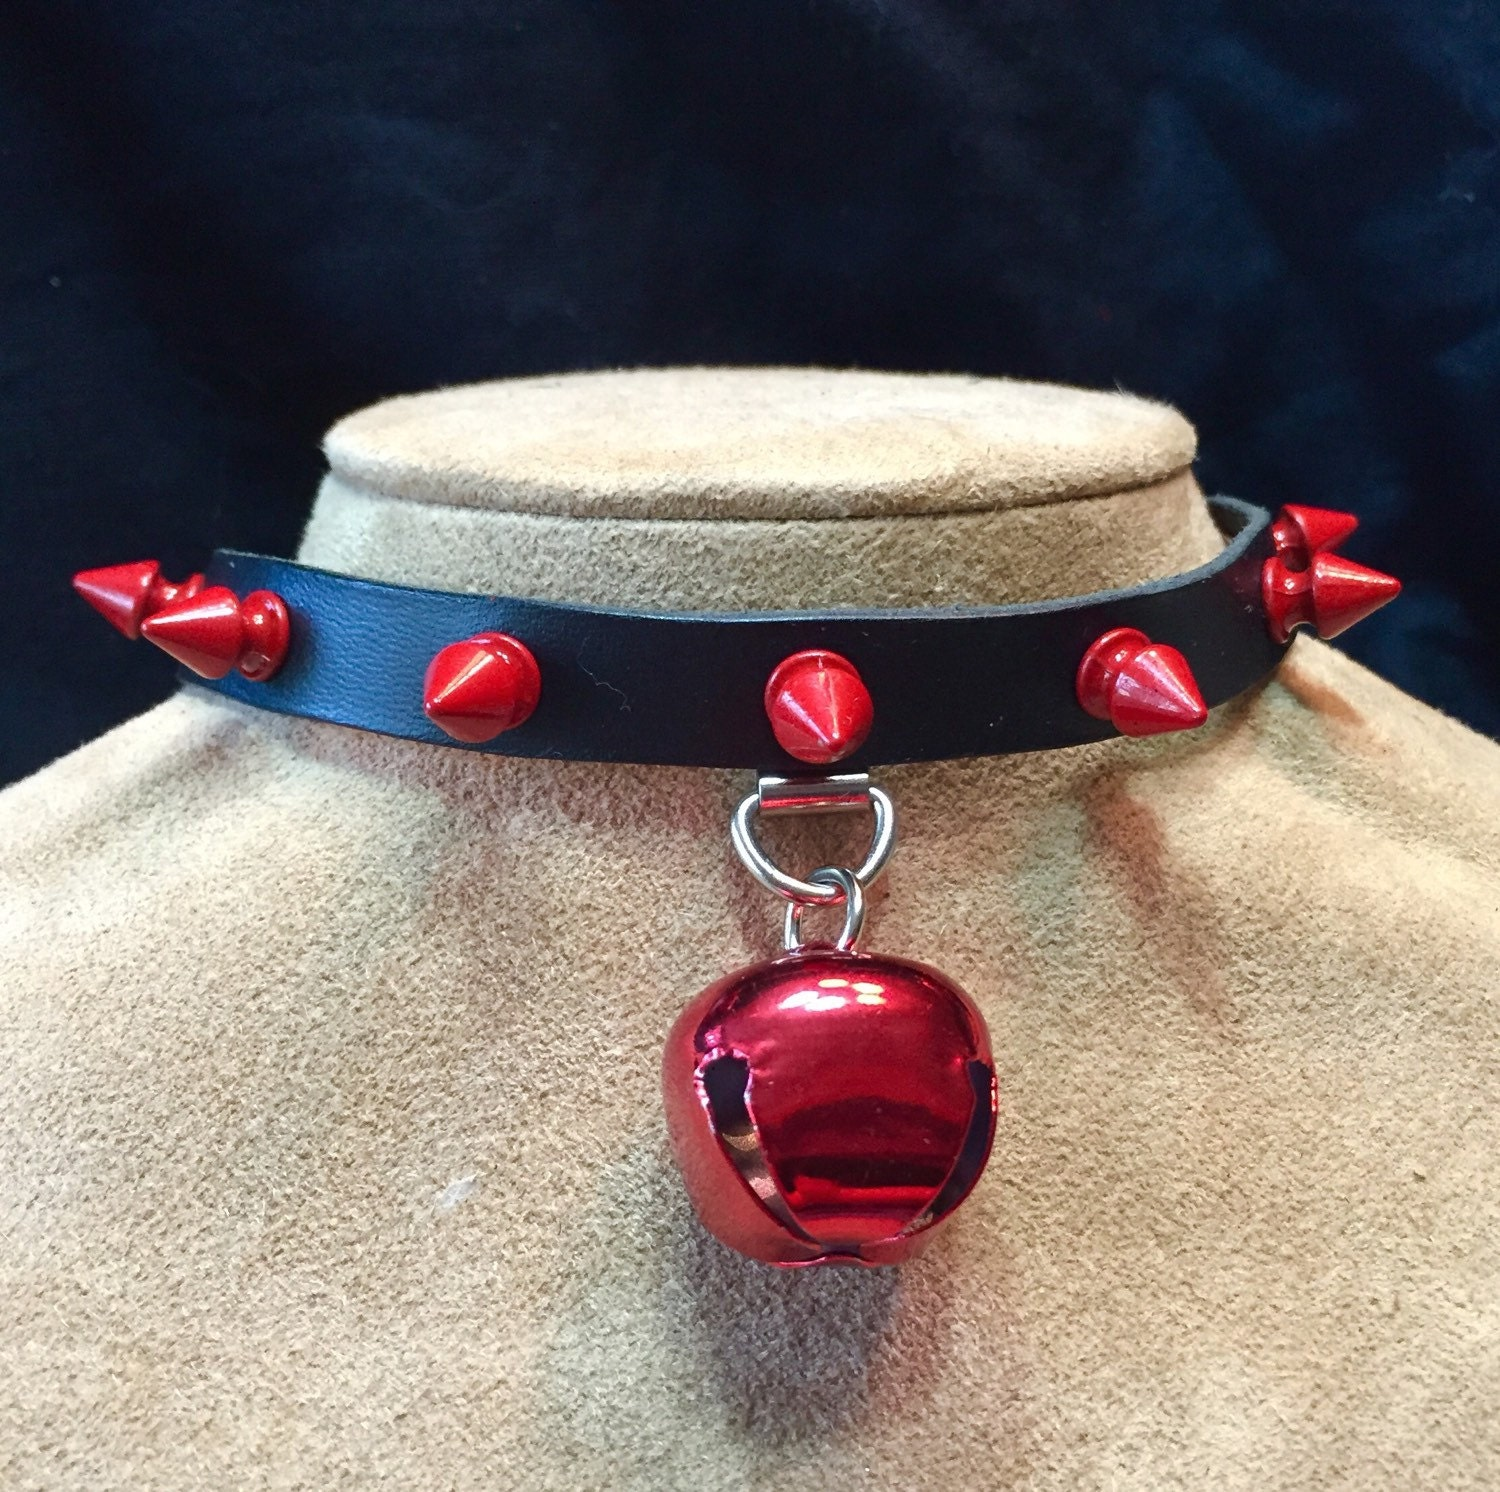 Red Jingle Bell on Red Spiked Leather Choker | Etsy